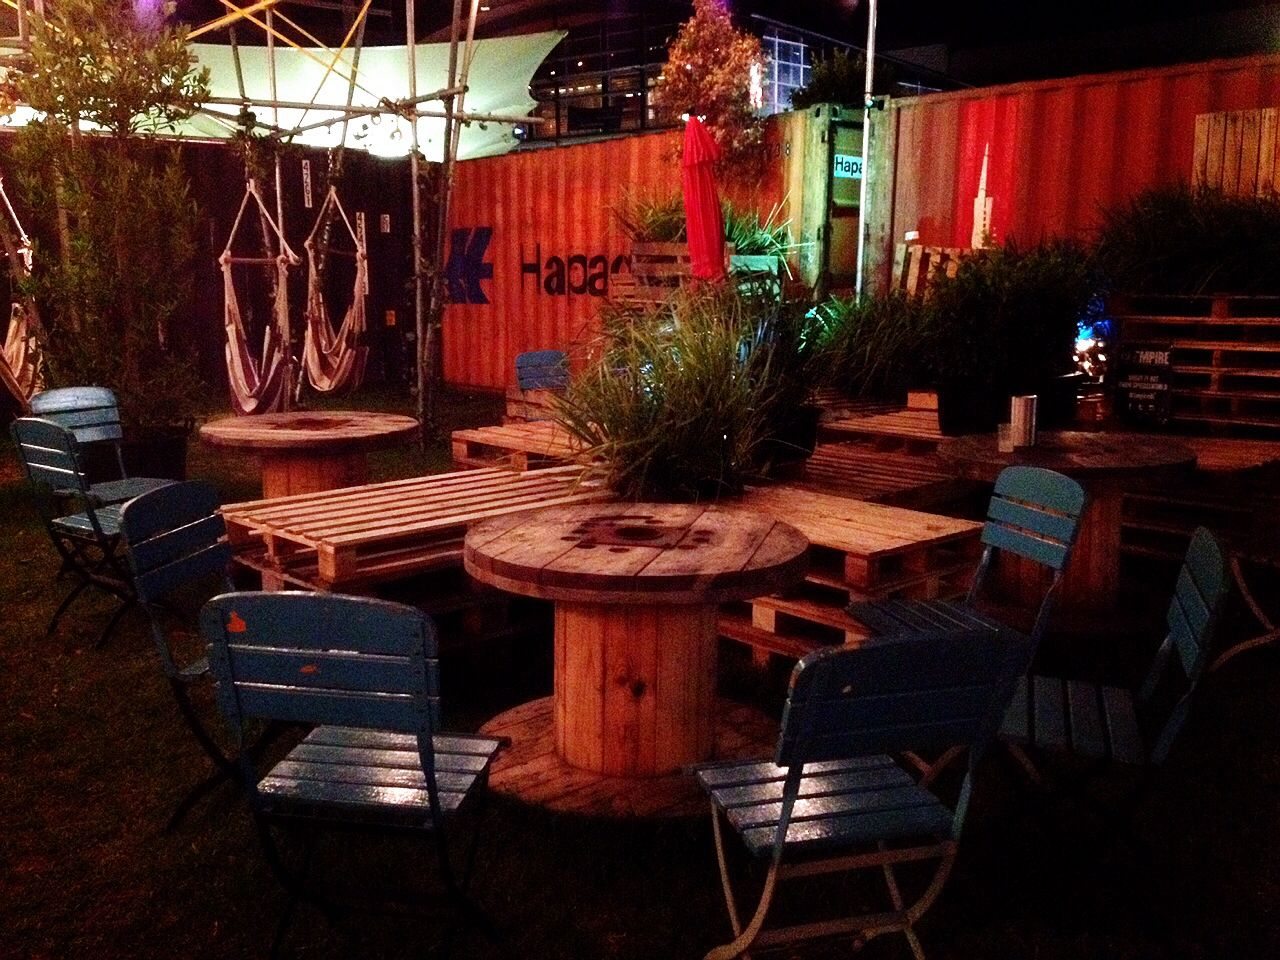 Pop Up Bar In Sydney Uses Pallets Cable Reels Shipping Containers And Scaffolding Temporary Space An Large Wooden Spools Container Restaurant Container Cafe